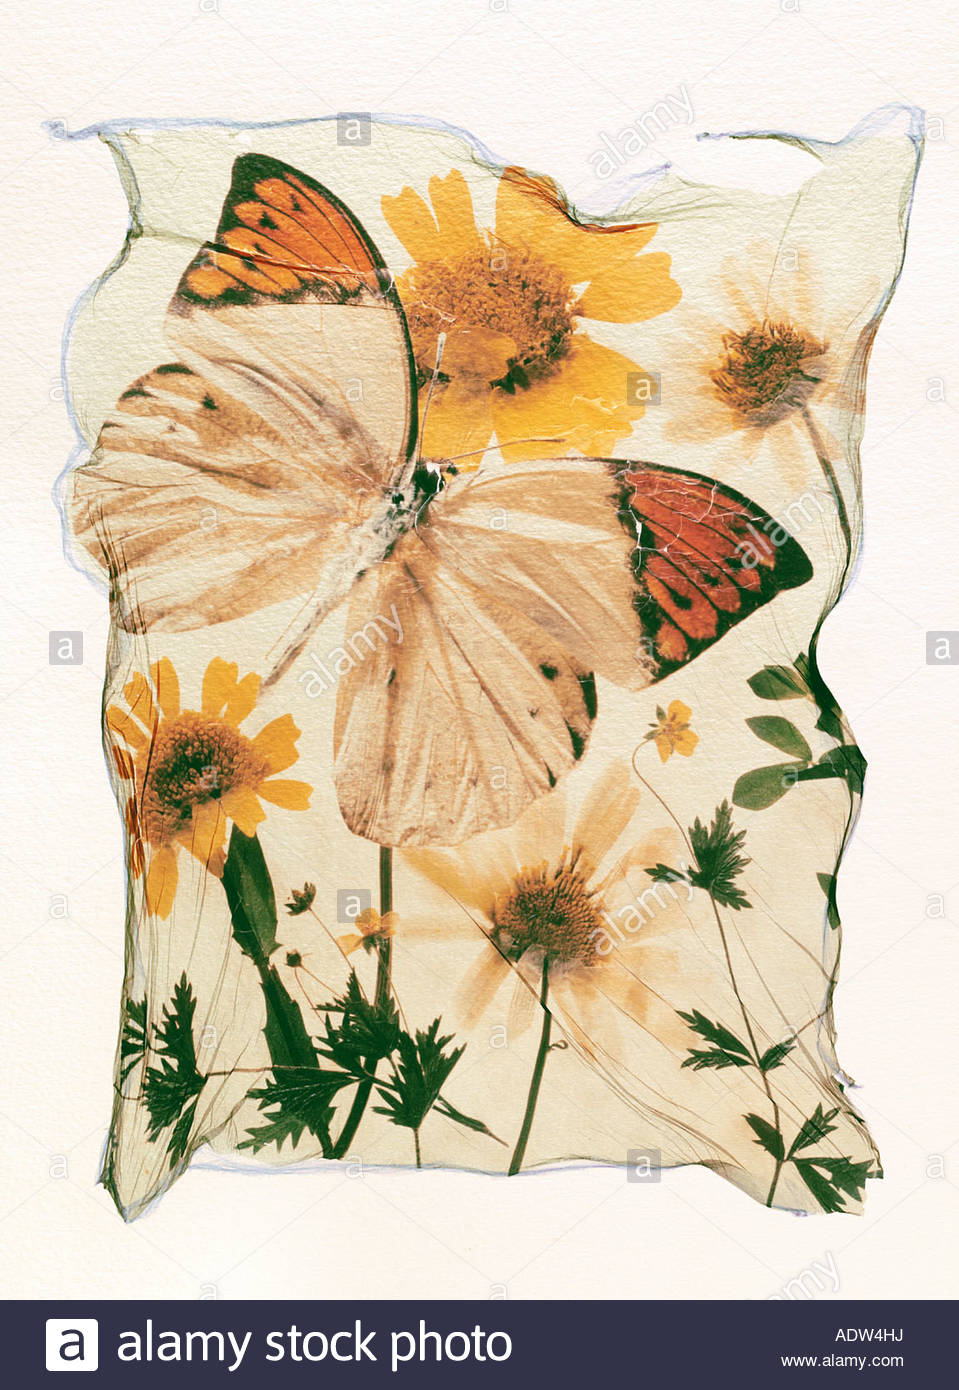 Polaroid lift of an orange tipped butterfly on a flower, opened winged. A concept art photo - Stock Image